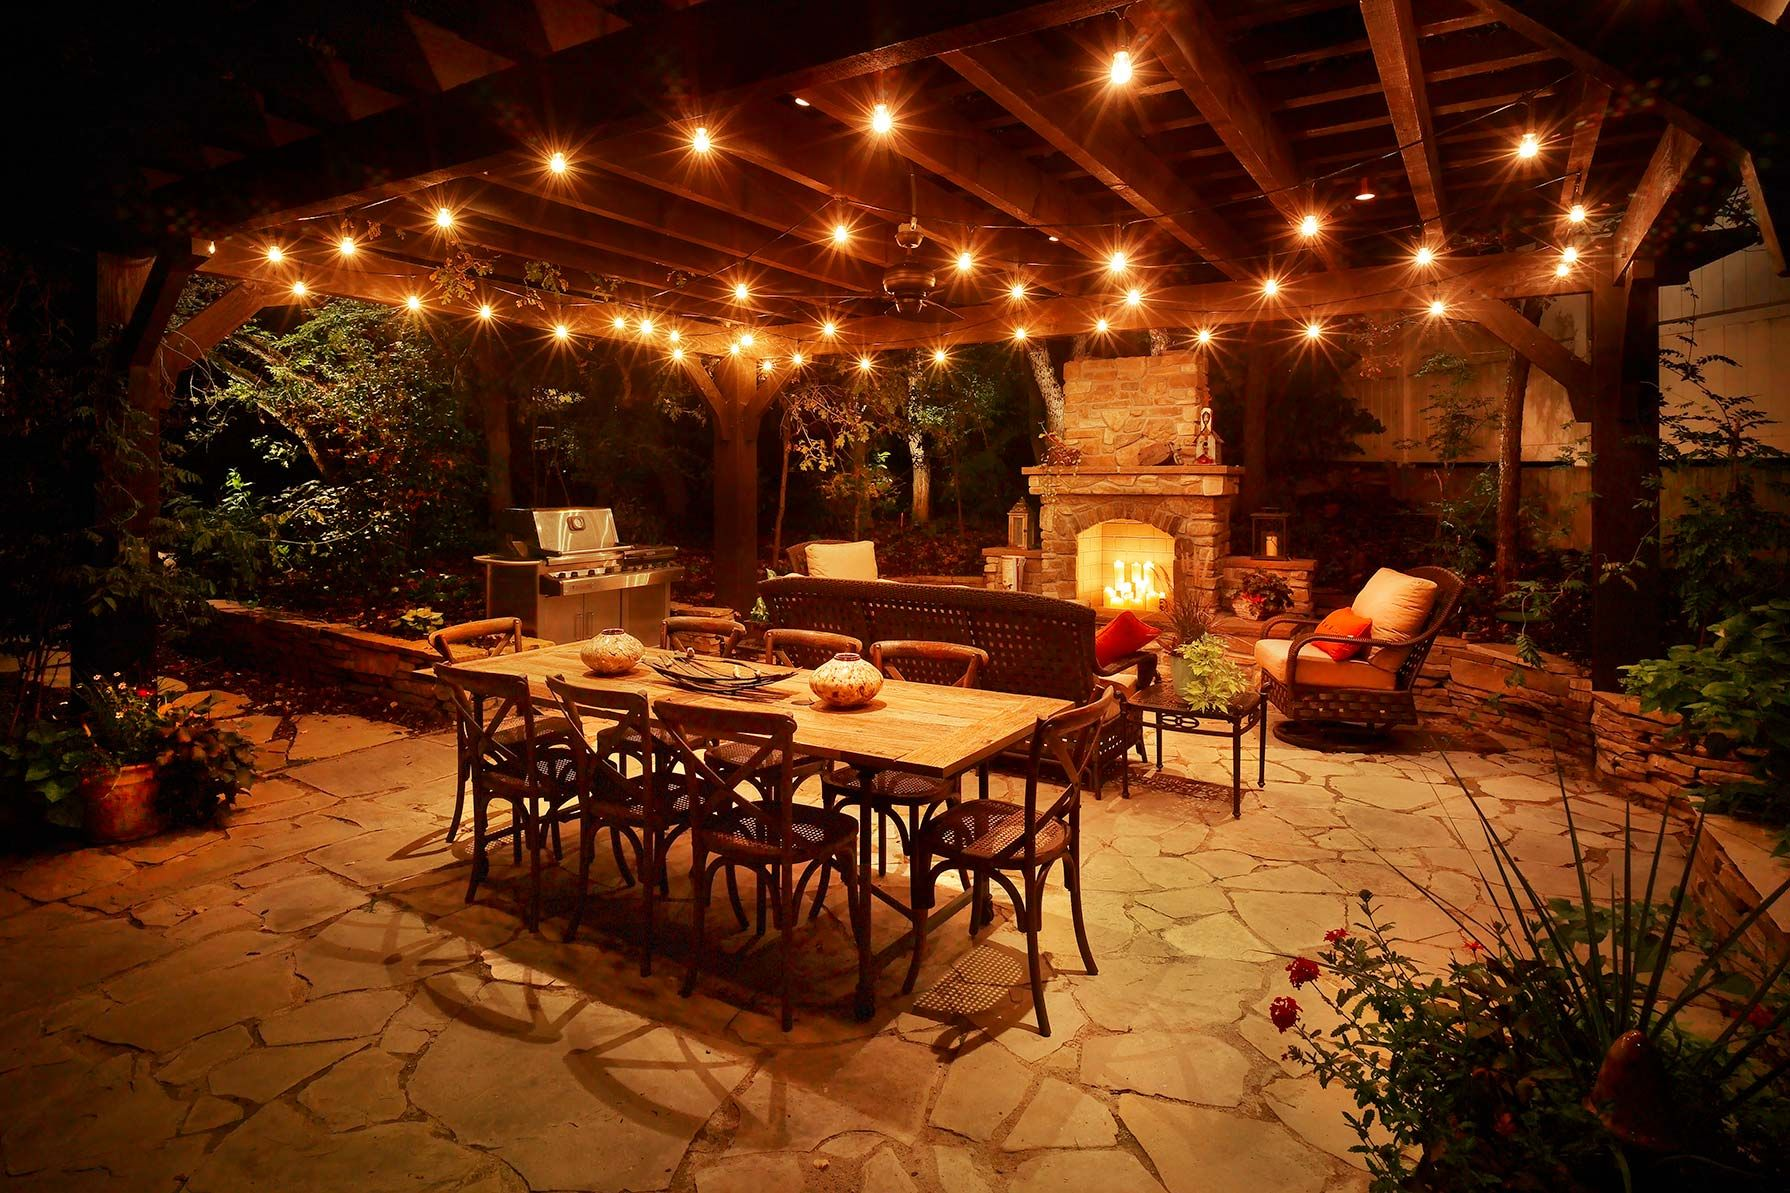 Superbe Pergola And Outdoor Kitchen Patio Lighting Draper Utah With Outdoor  Decoration Beautiful Pergolas Design With Lighting Ideas Convenient Place  For You